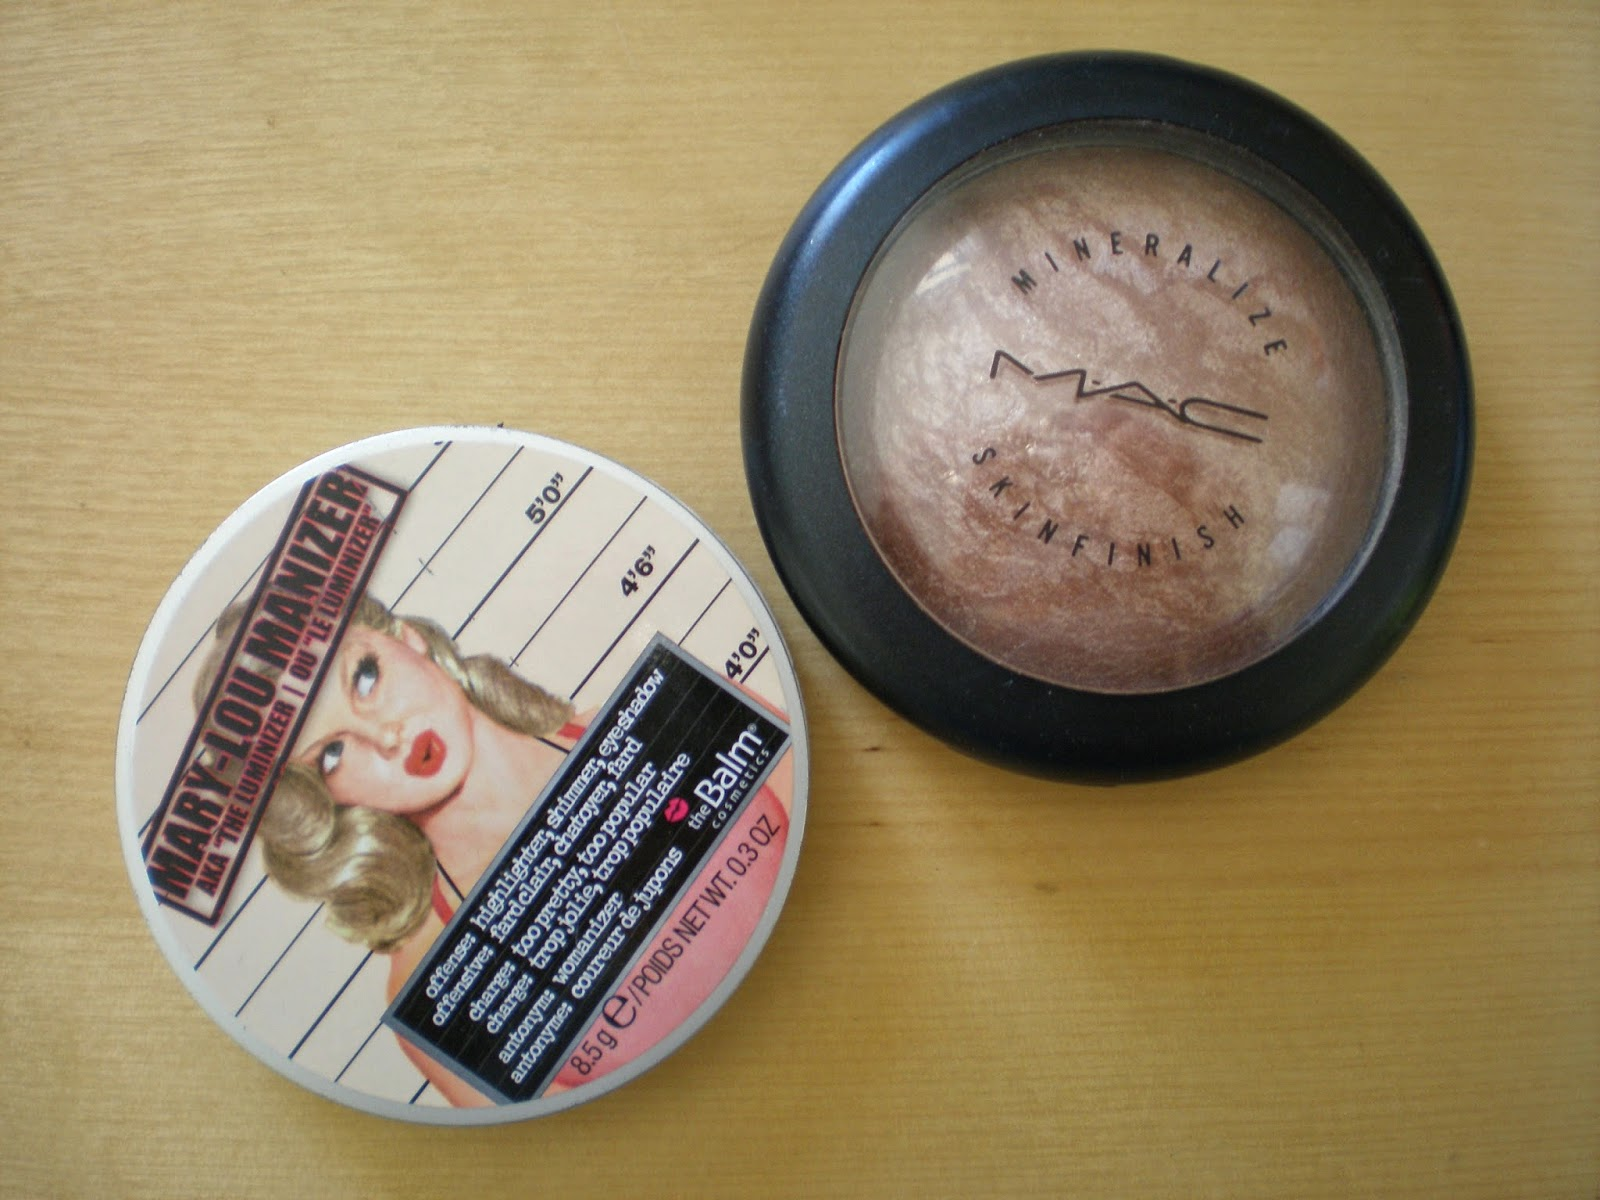 Bronzing and highlighting powders